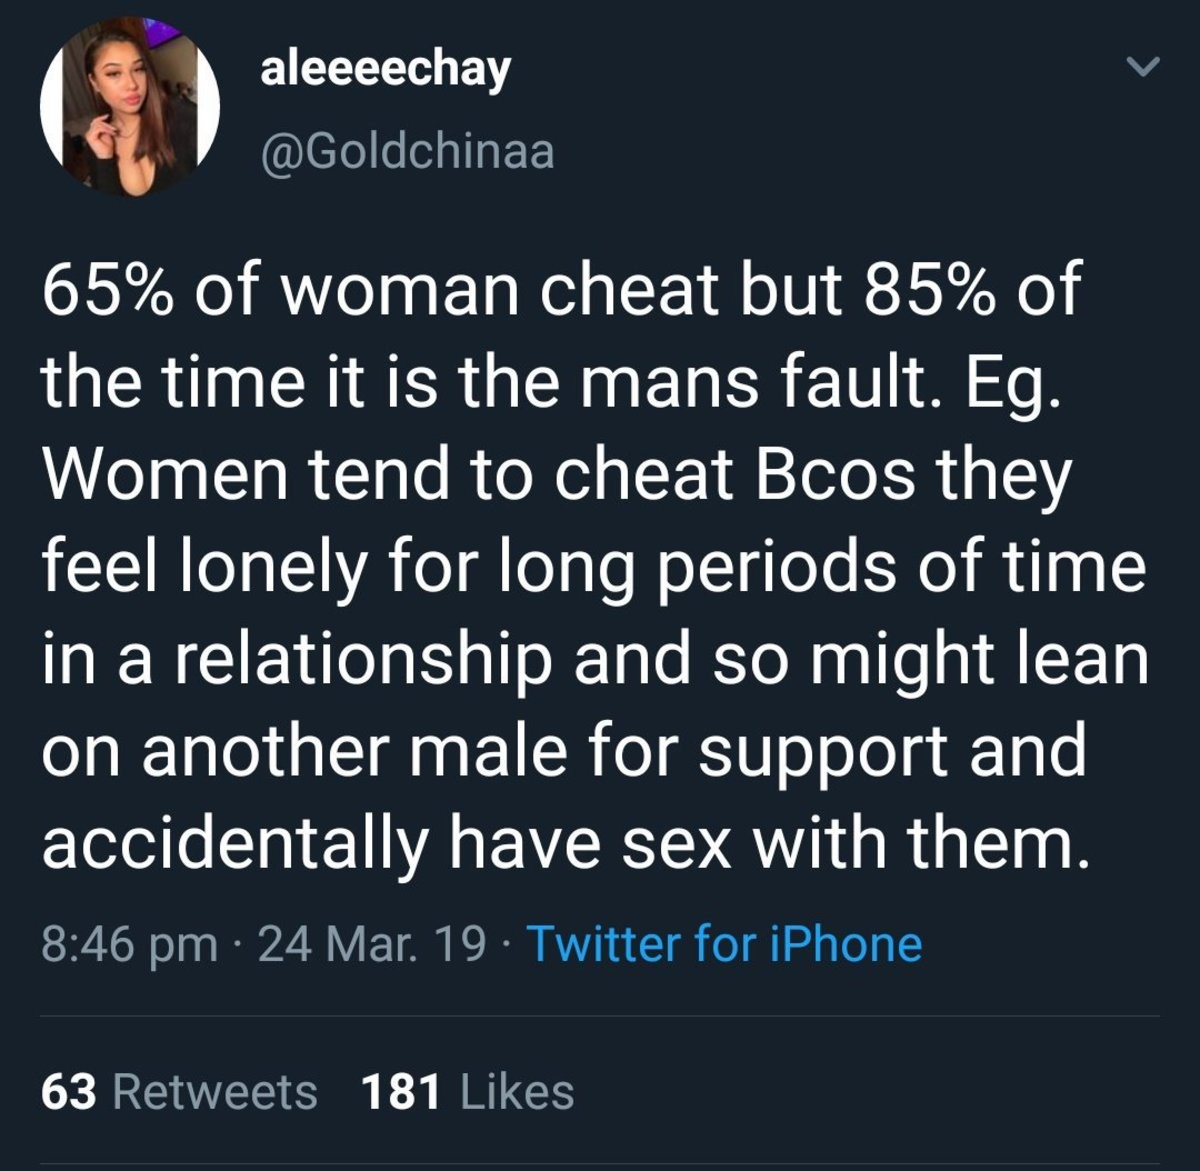 Why women cheat. join list: DailyTumblr (979 subs)Mention History.. Sounds like thot propaganda but ok